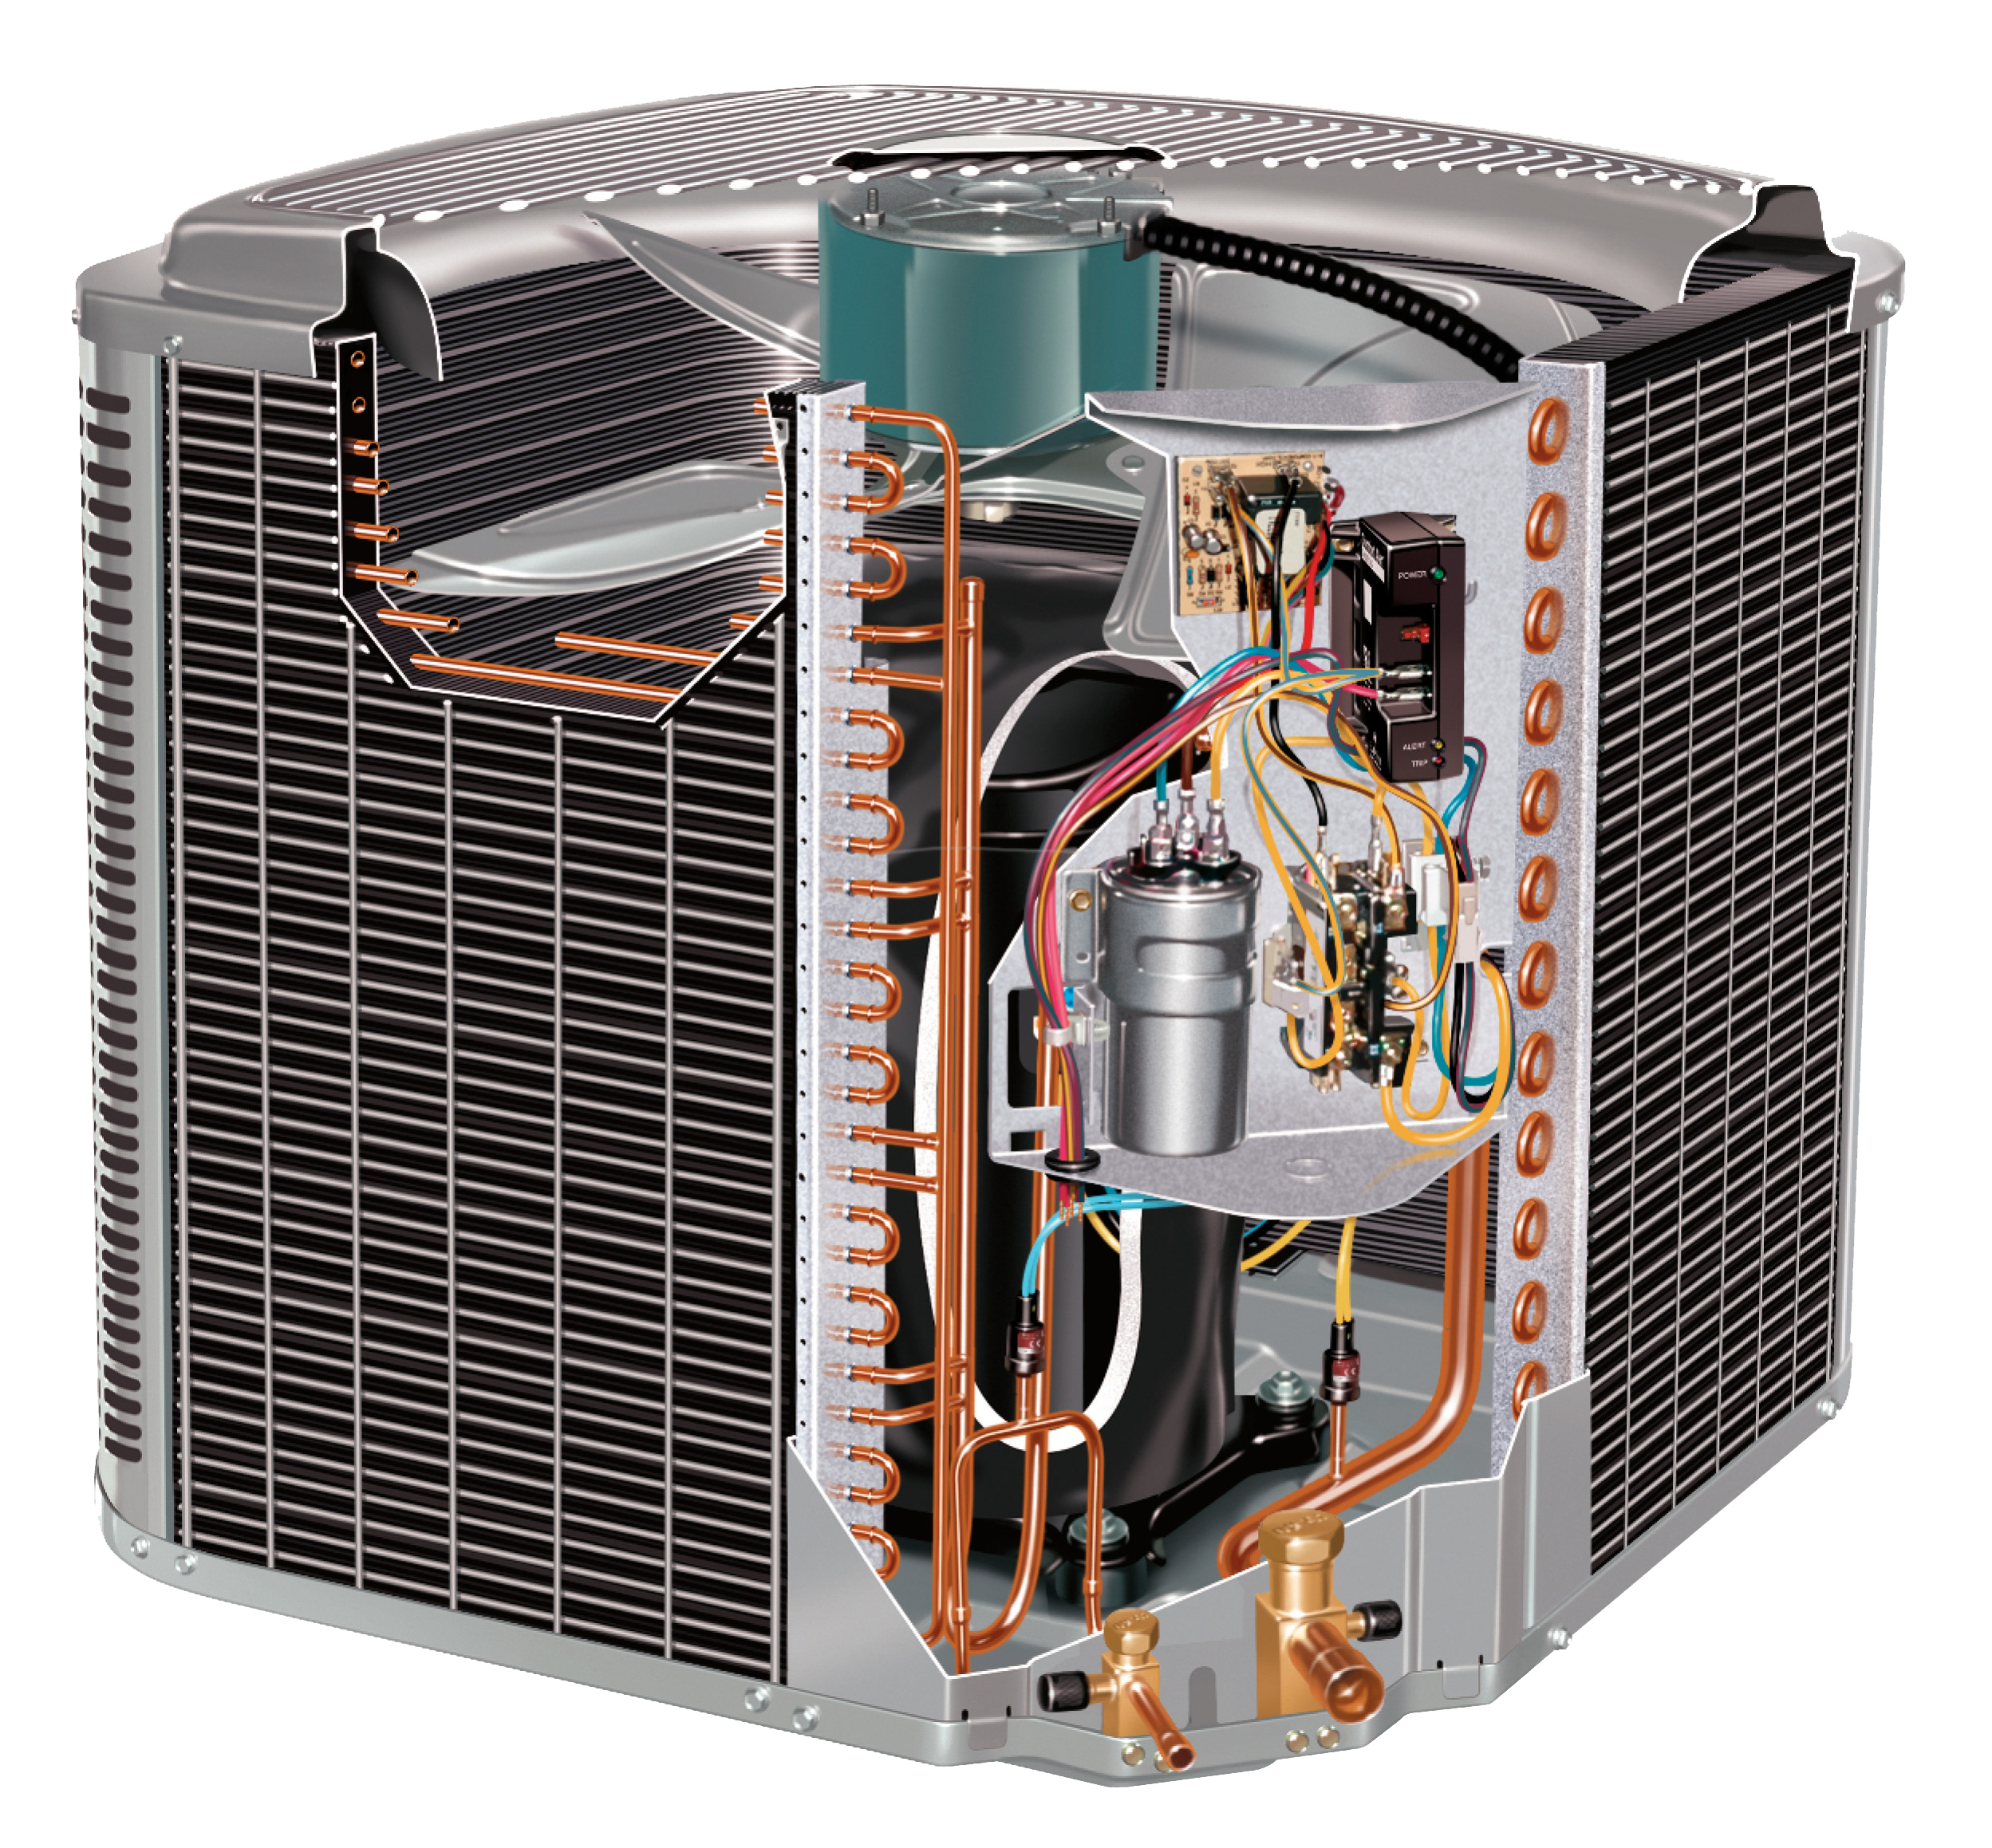 Keeprite Air Conditioner S Air Pro Heating And Air